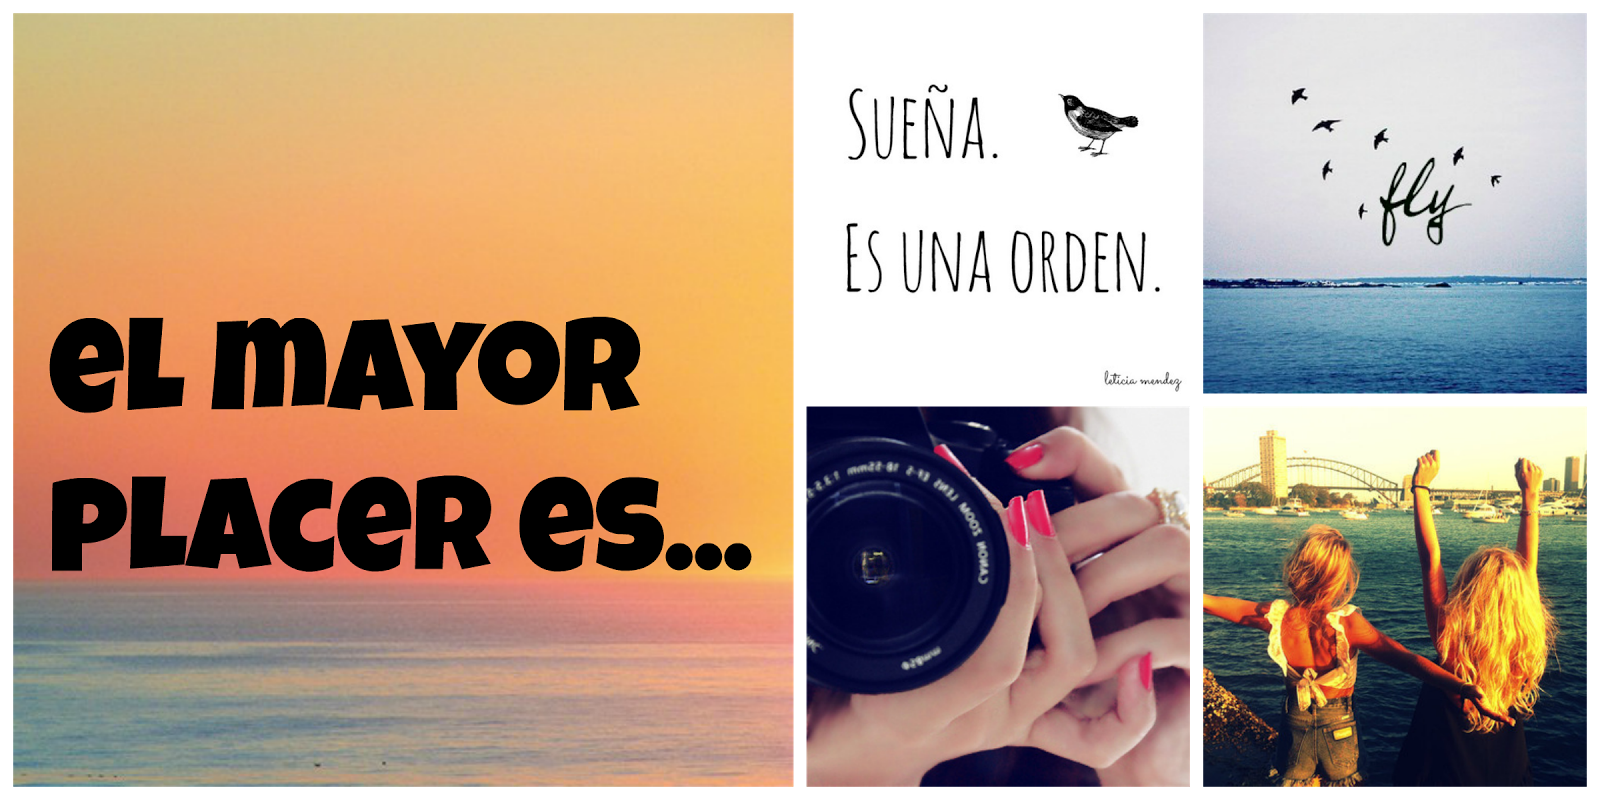 El mayor placer es...